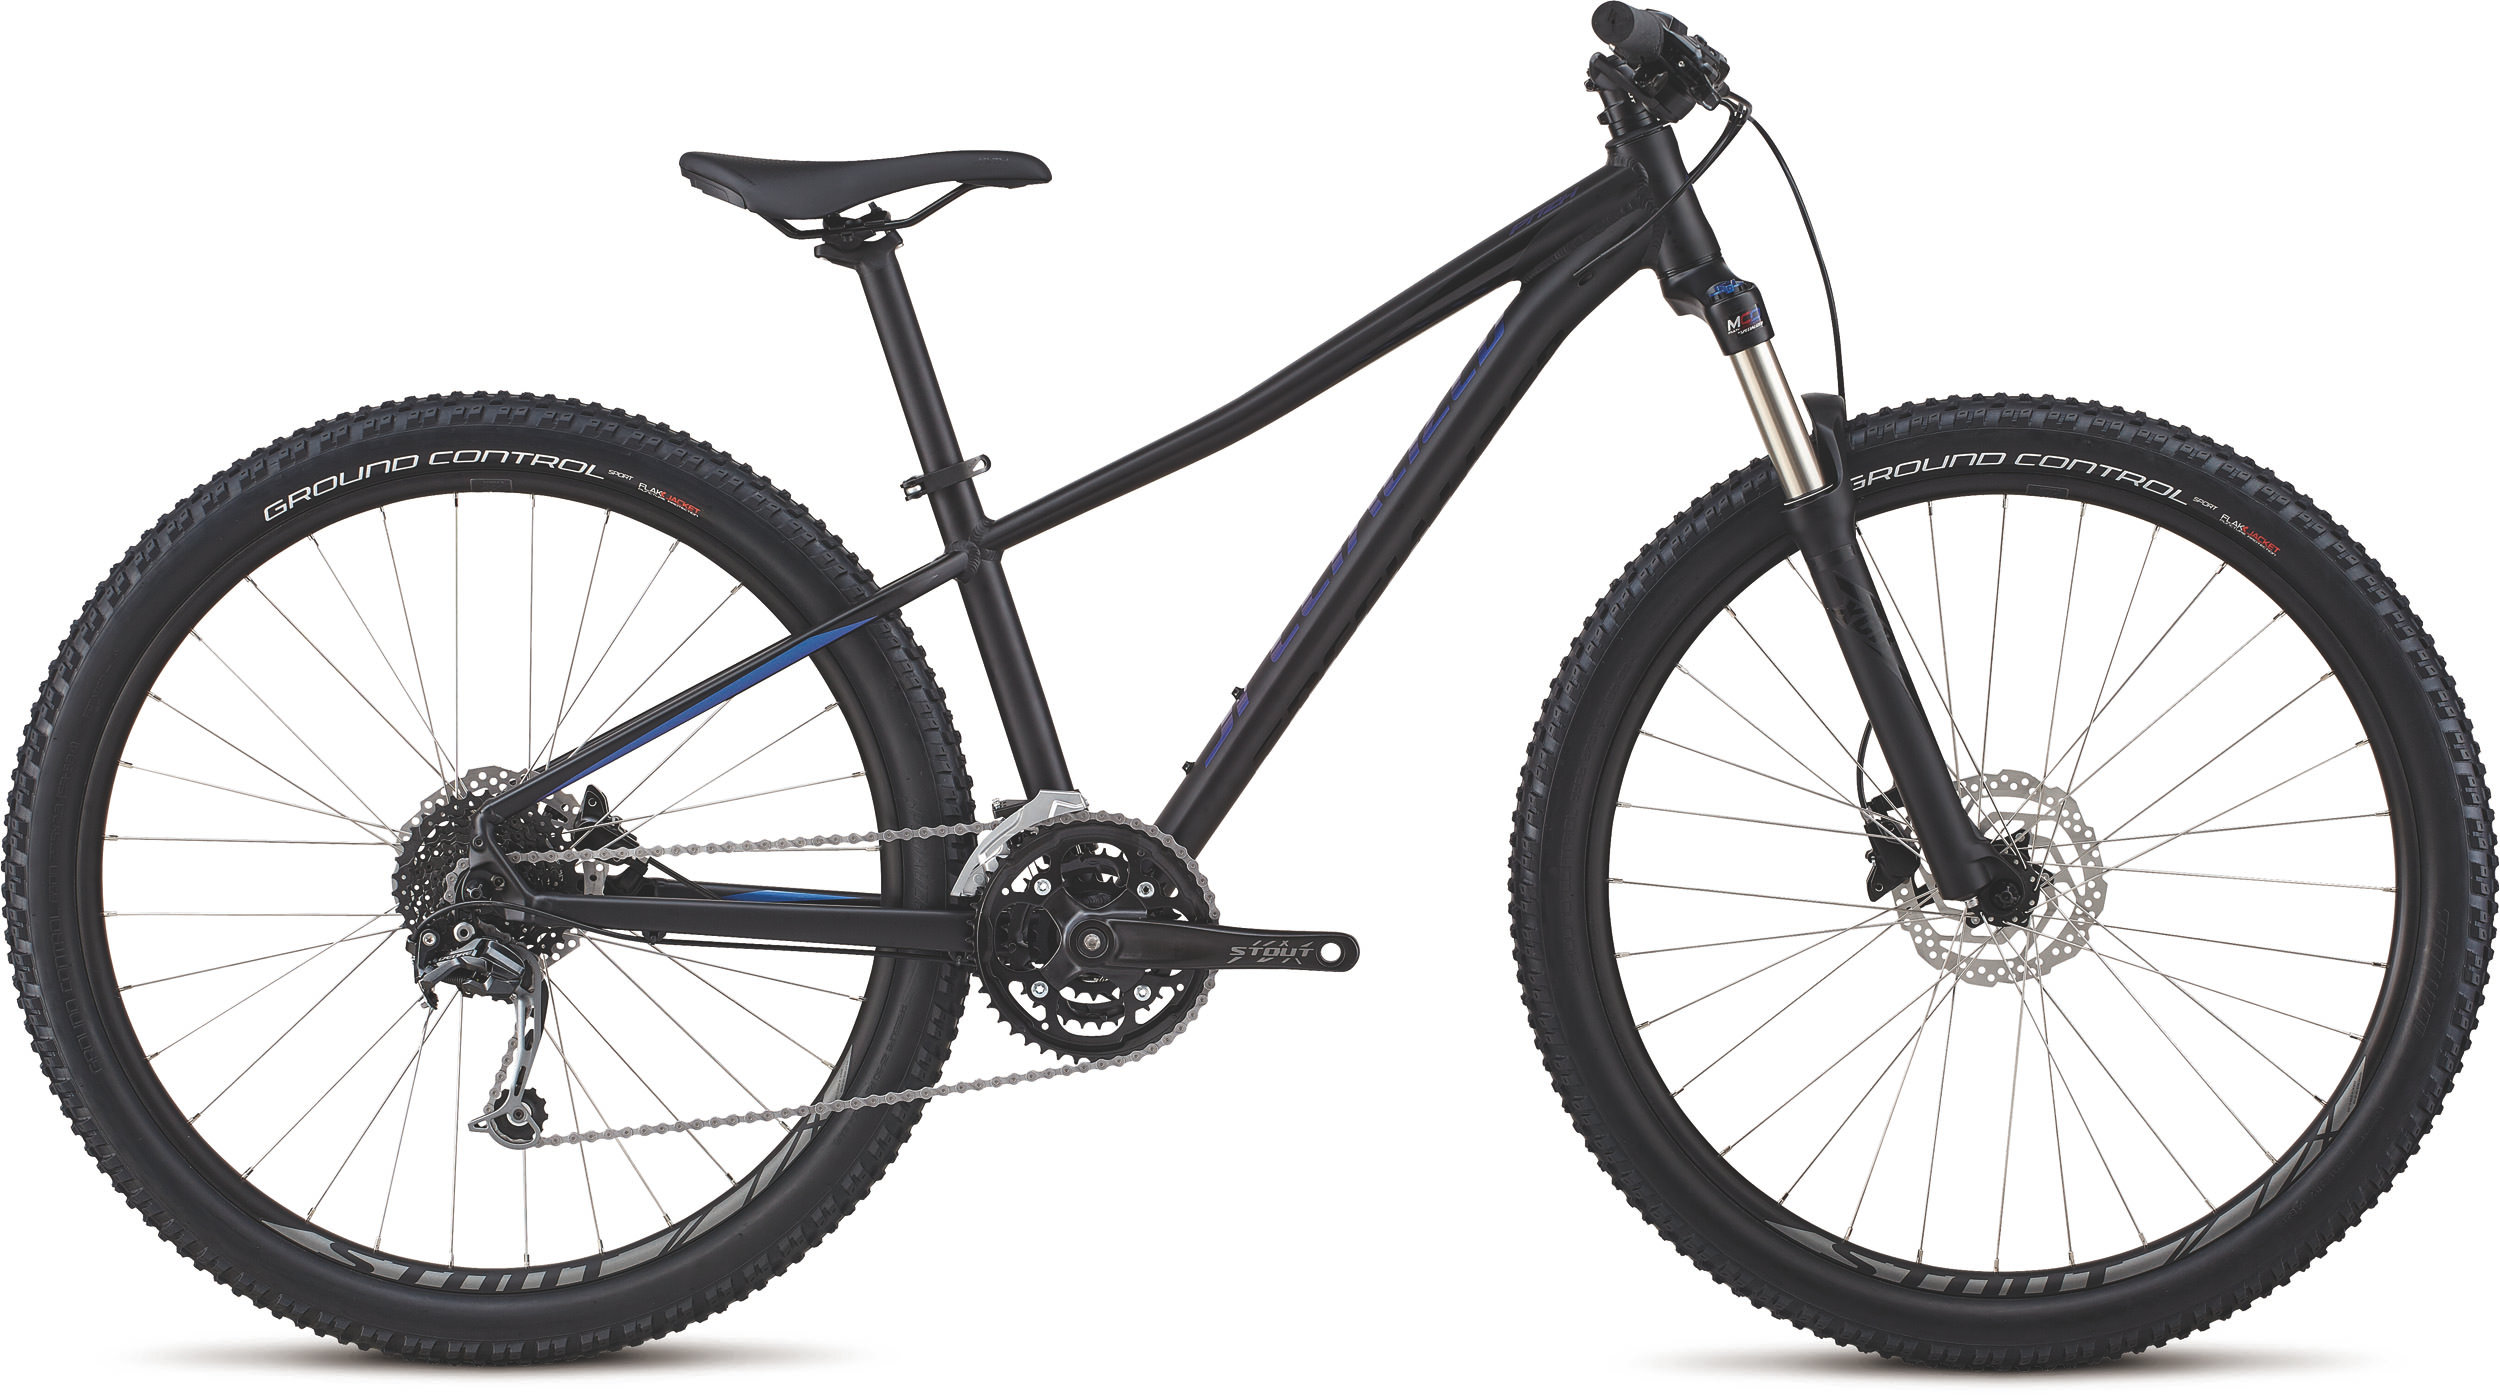 Specialized Women´s Pitch Expert 27.5 Gloss Satin Tarmac Black / Chameleon / Black XS - Bike Maniac